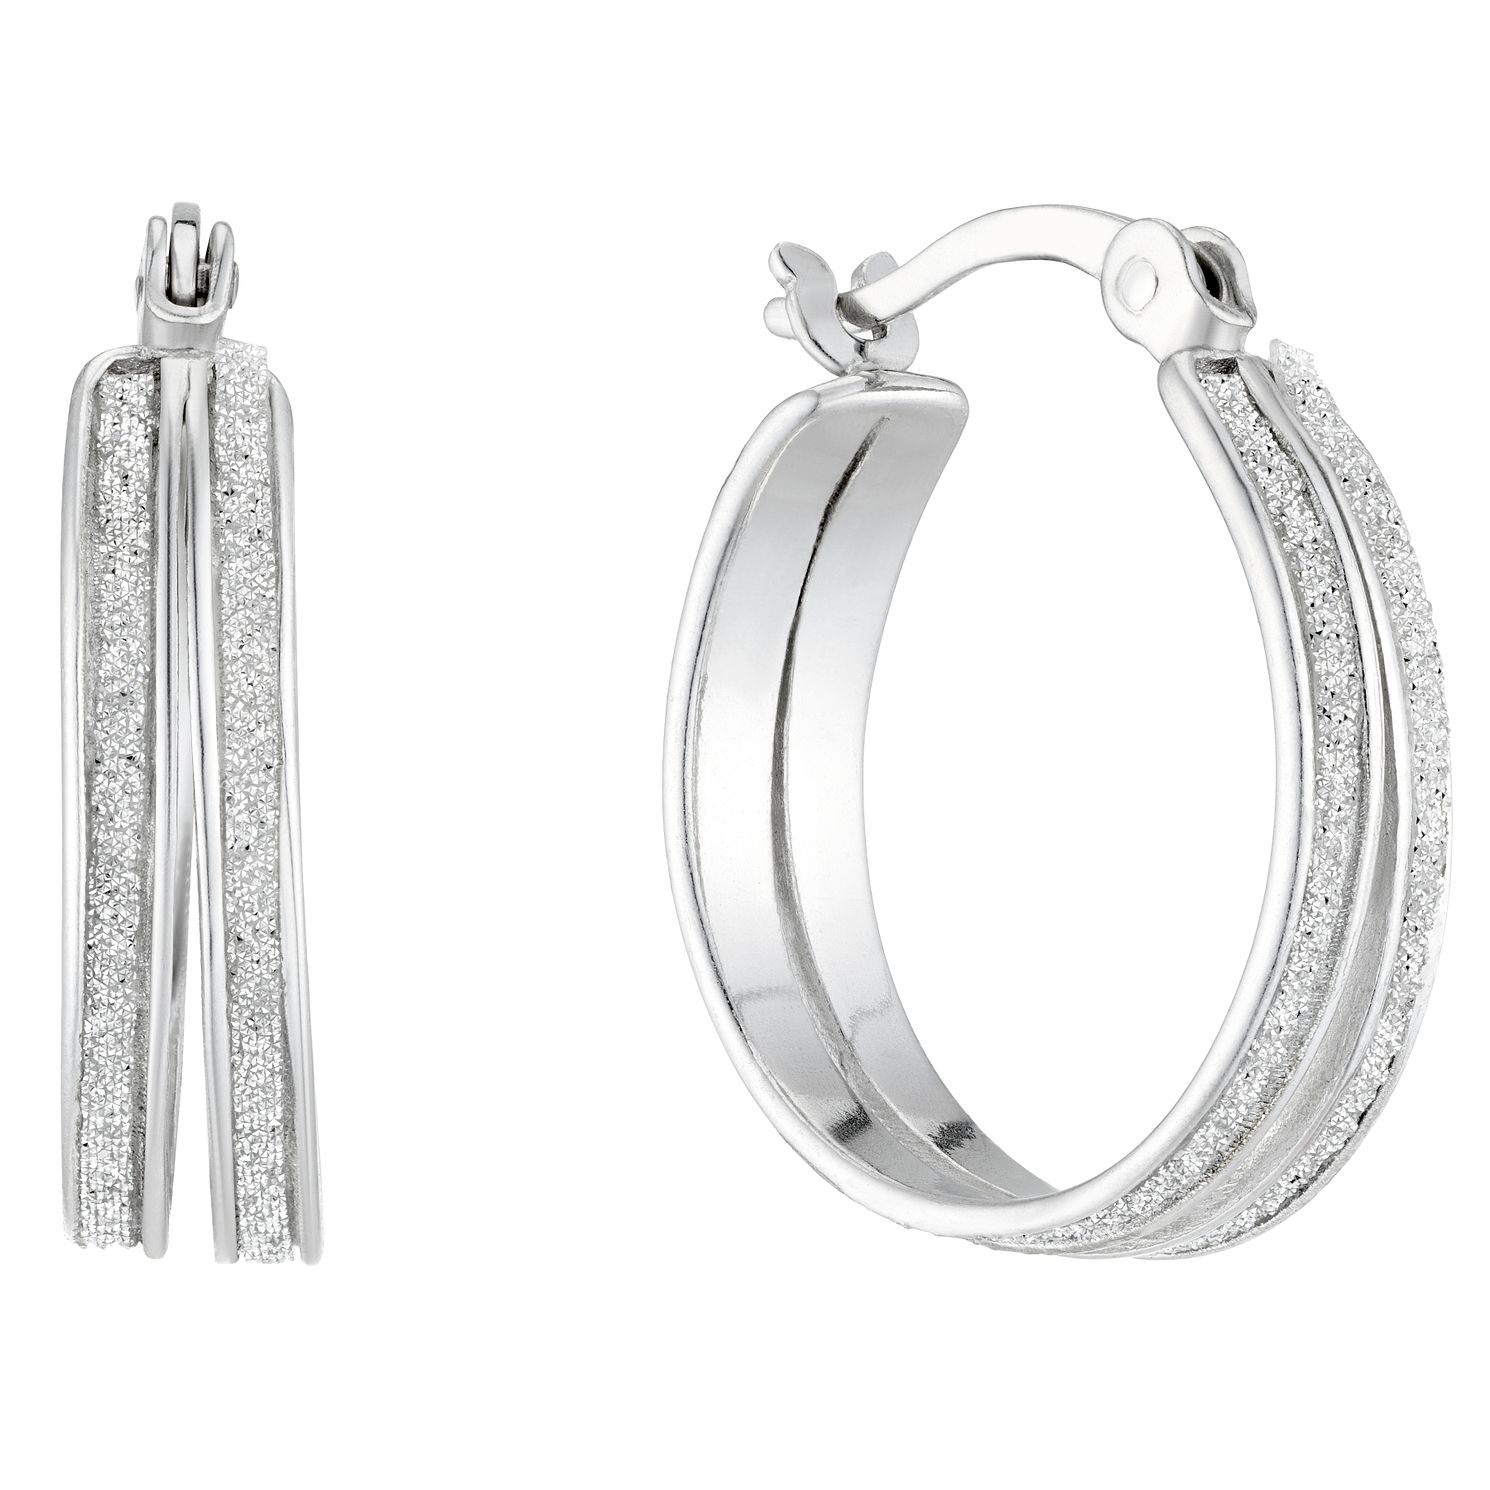 Sterling Silver Glitter Double Row 15mm Hoop Earrings - Product number 4818989